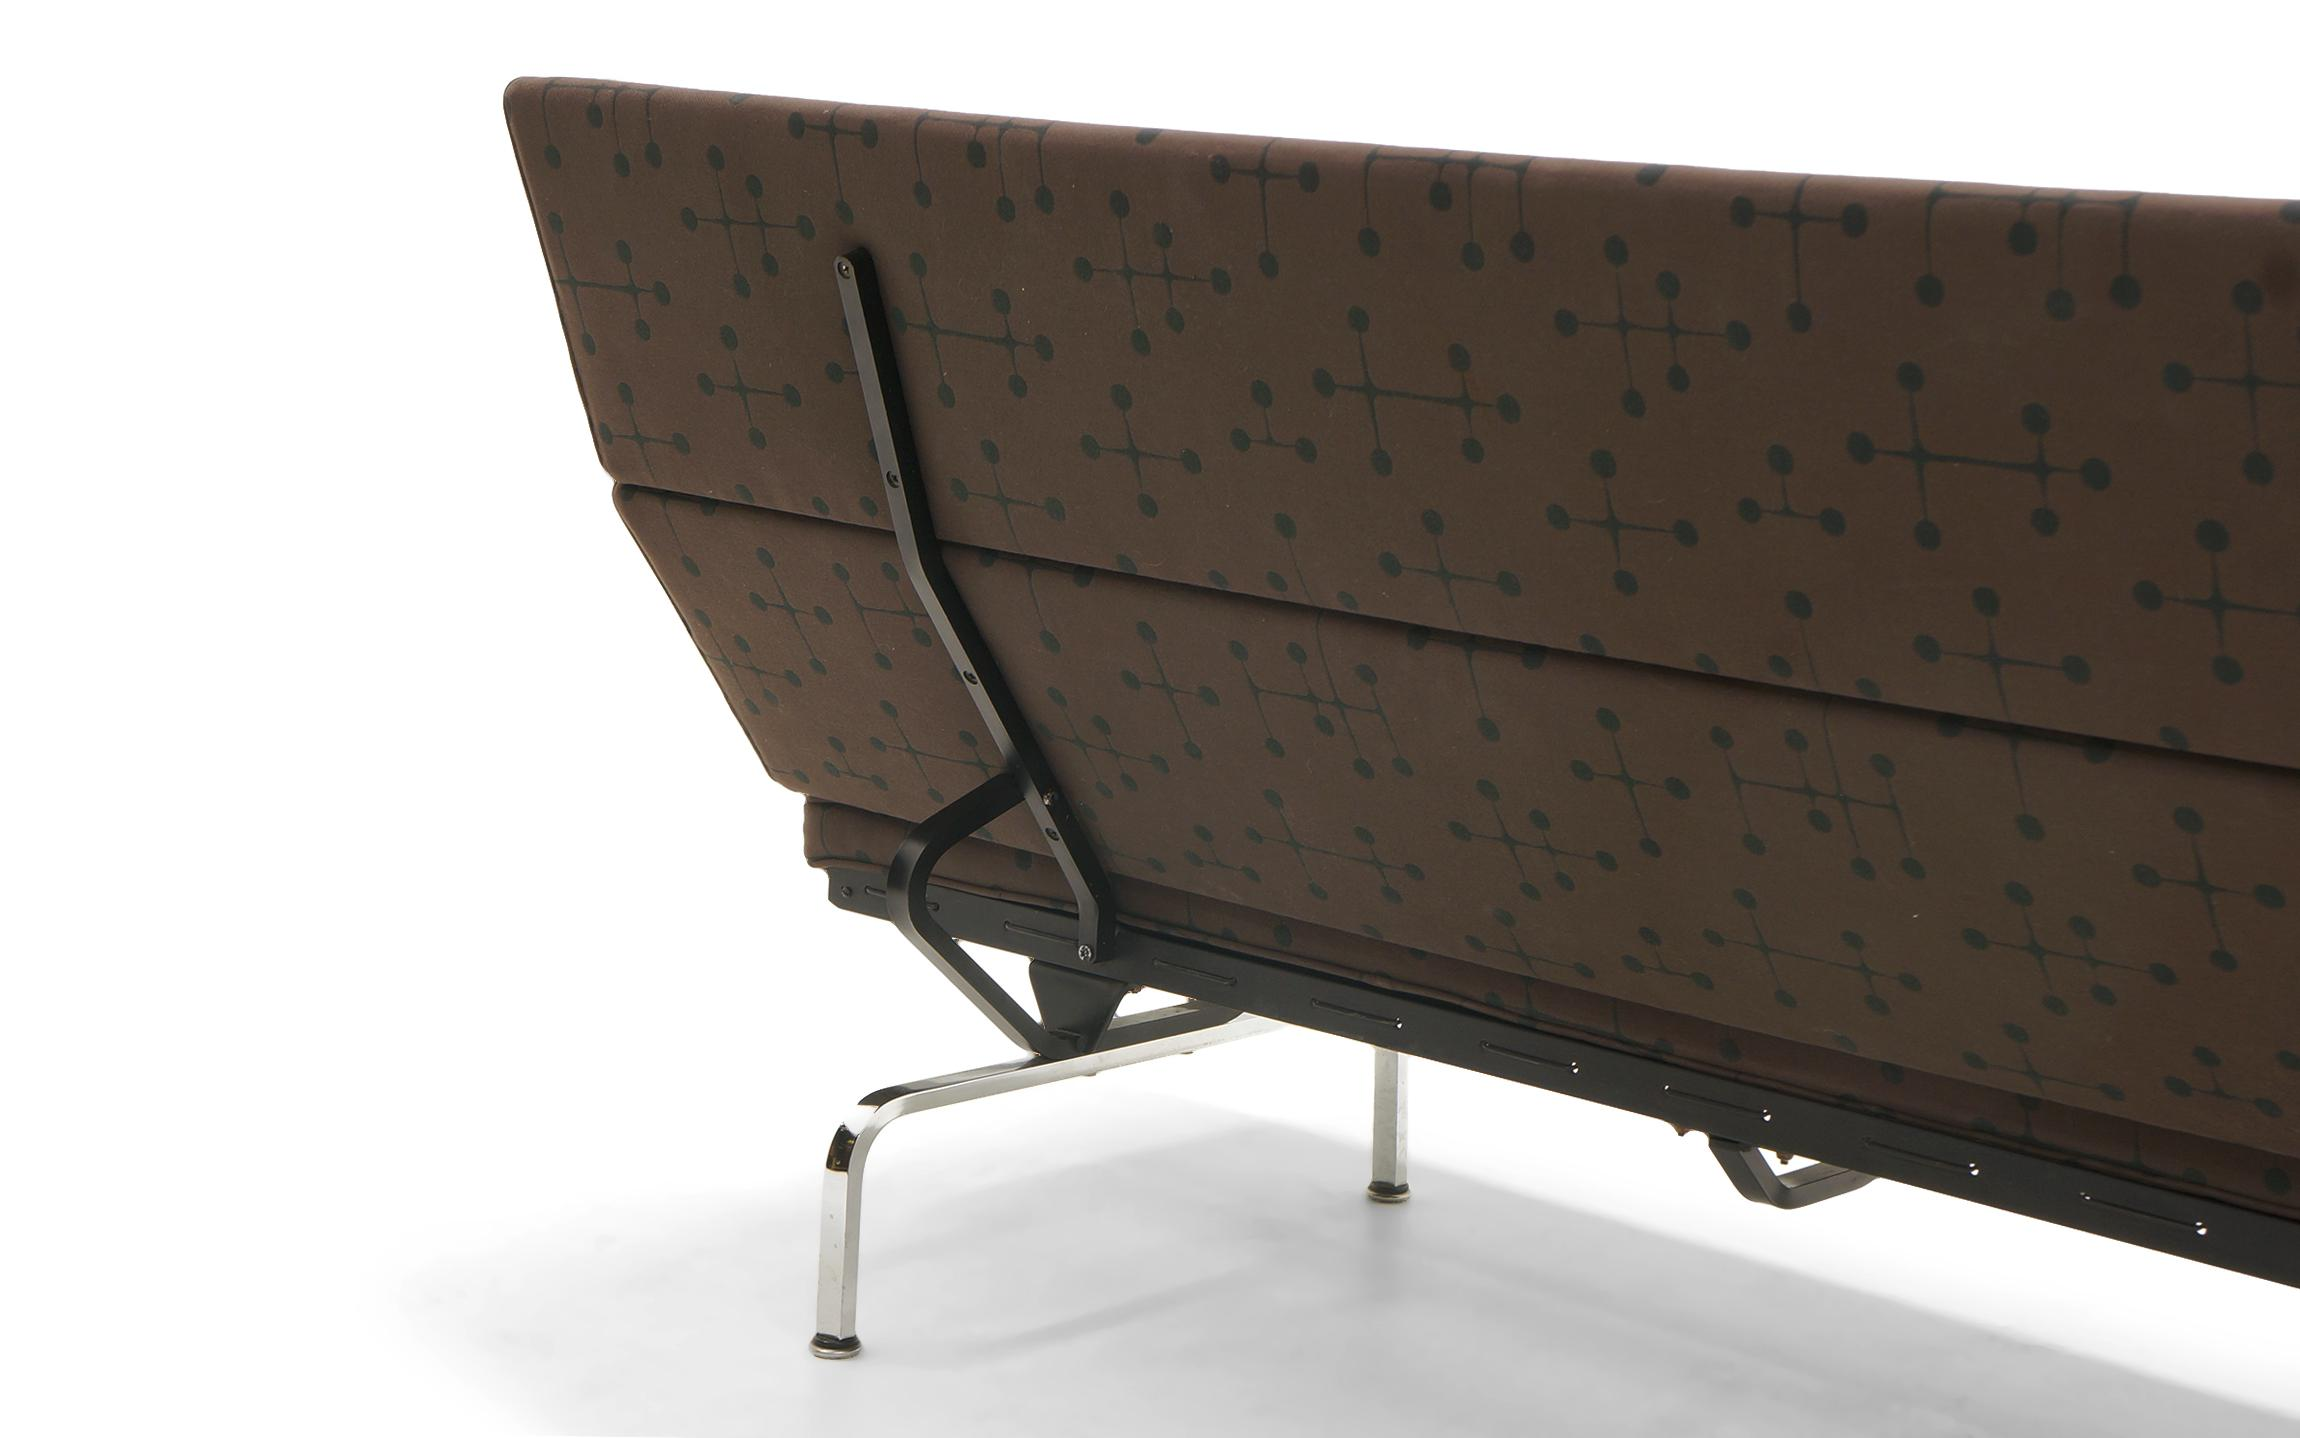 Attractive Charles And Ray Eames Sofa Compact For Herman Miller In Eames Dot Pattern  Fabric   Image